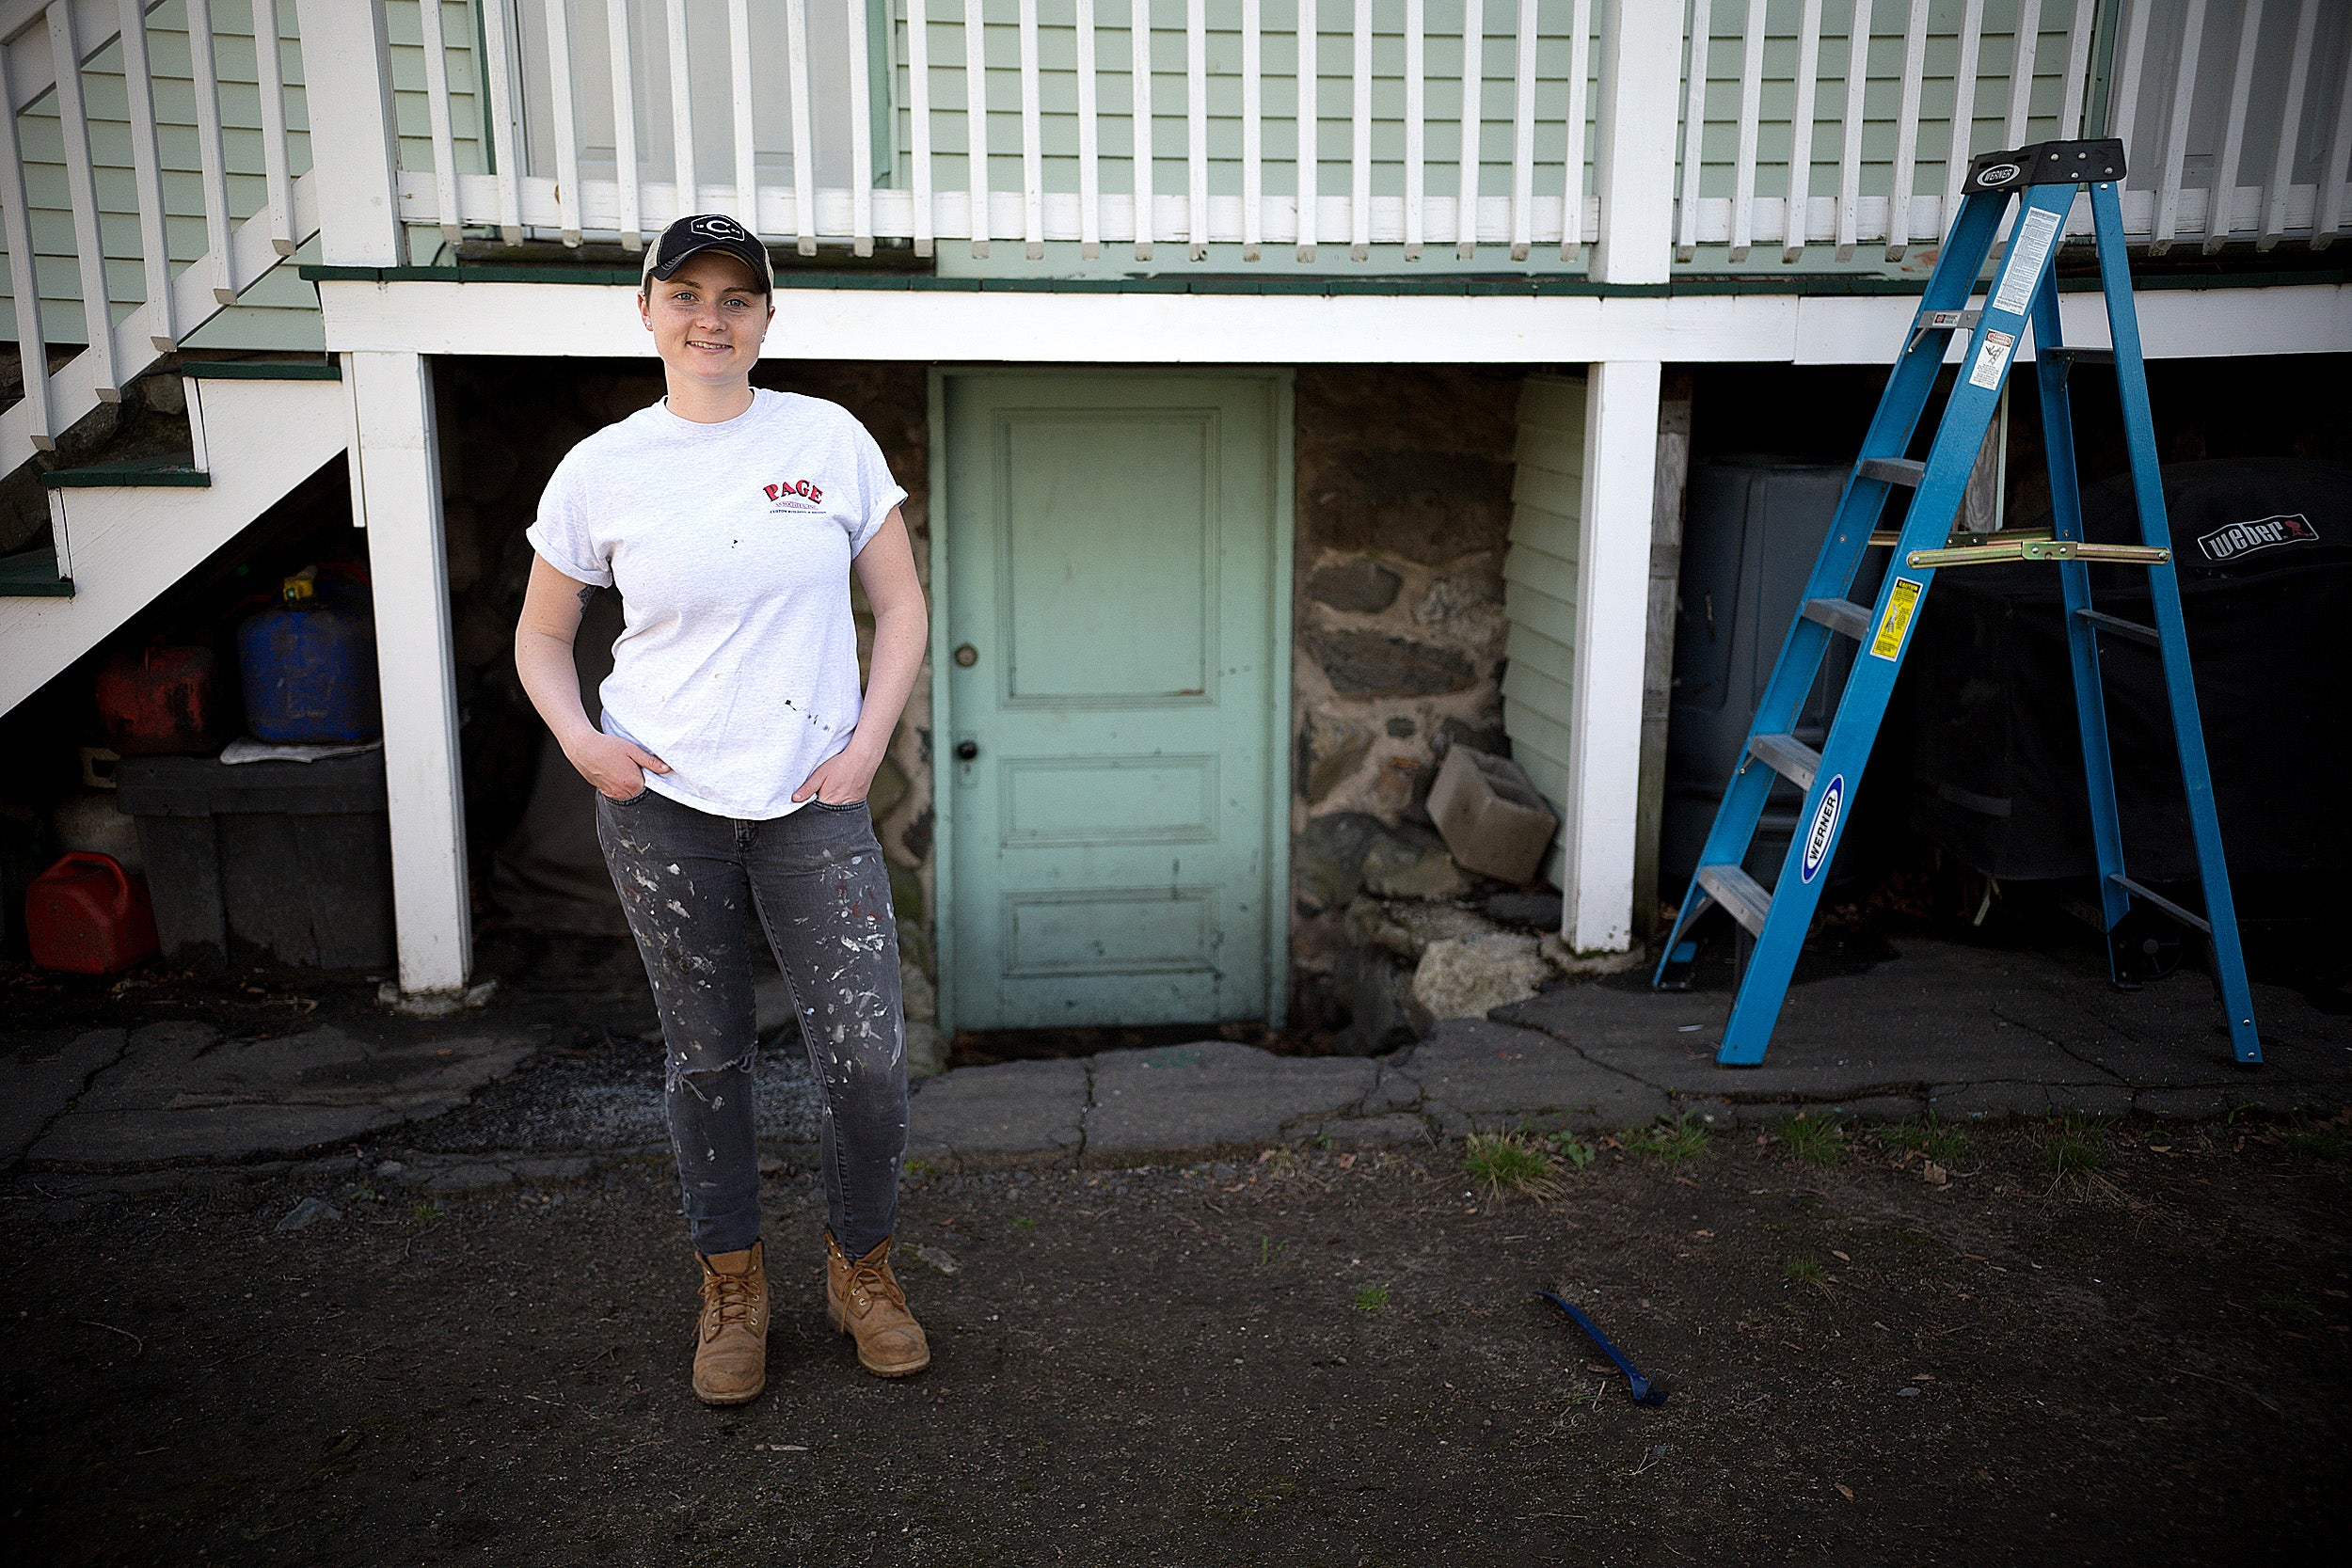 Struggling to find direction as an underclassman, Haley Curtin '18 took a gap year to help rebuild rural communities in West Virginia where she found both spiritual and professional purpose.